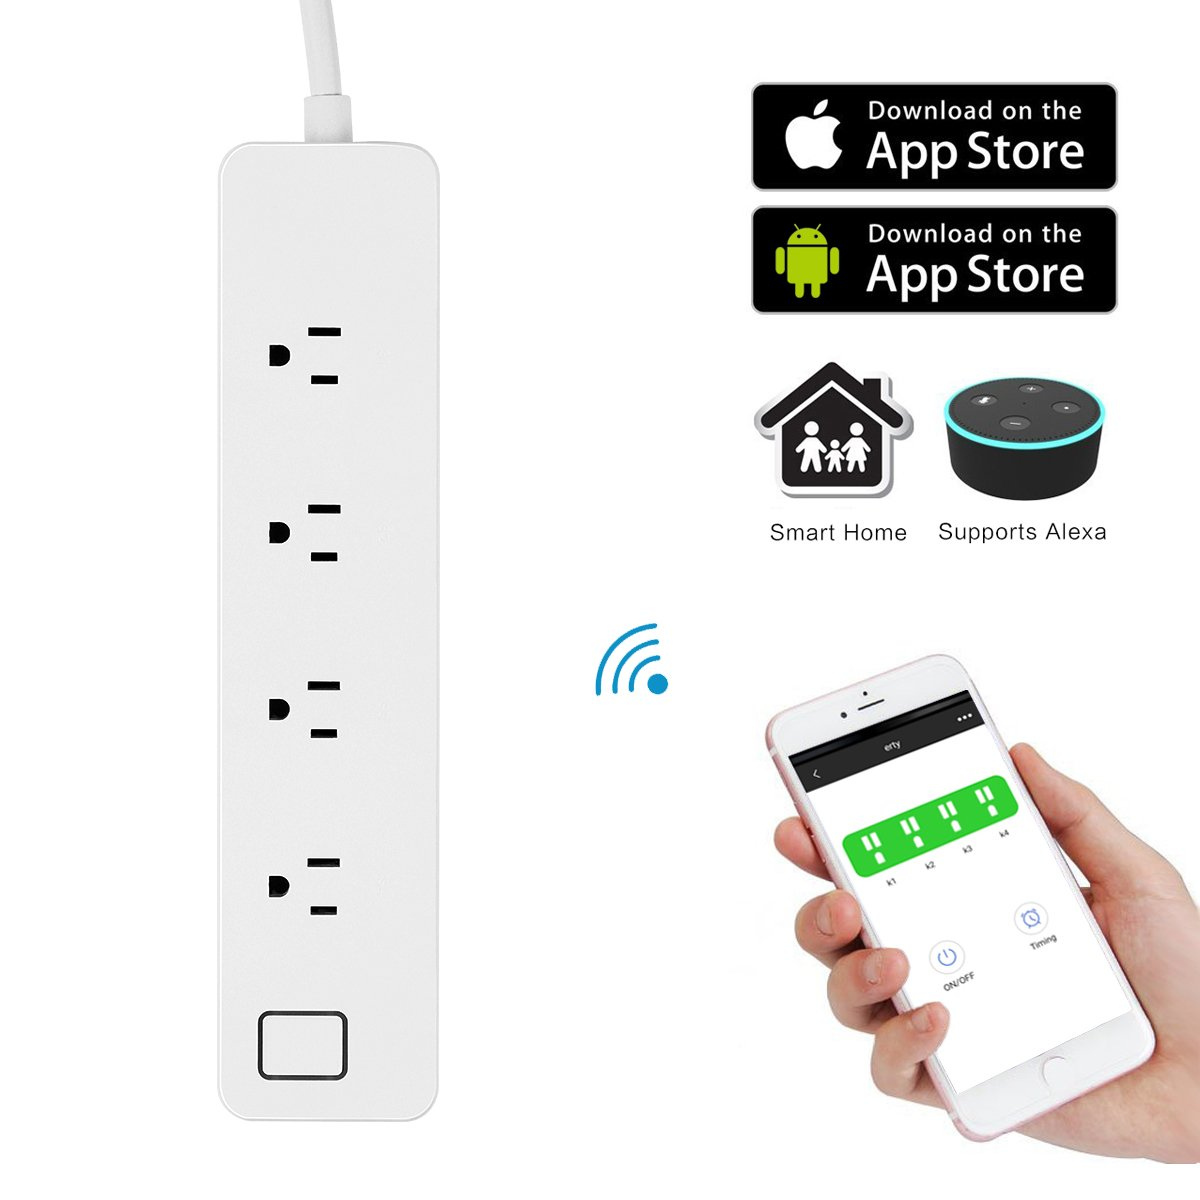 Smart Power Strip, Powstro WiFi Multi Outlets with 3 USB Ports & 4 Remote Controlled AC Plugs, Separately Control Compatible Work with Amazon Alexa/Echo/Google Home for iOS Android